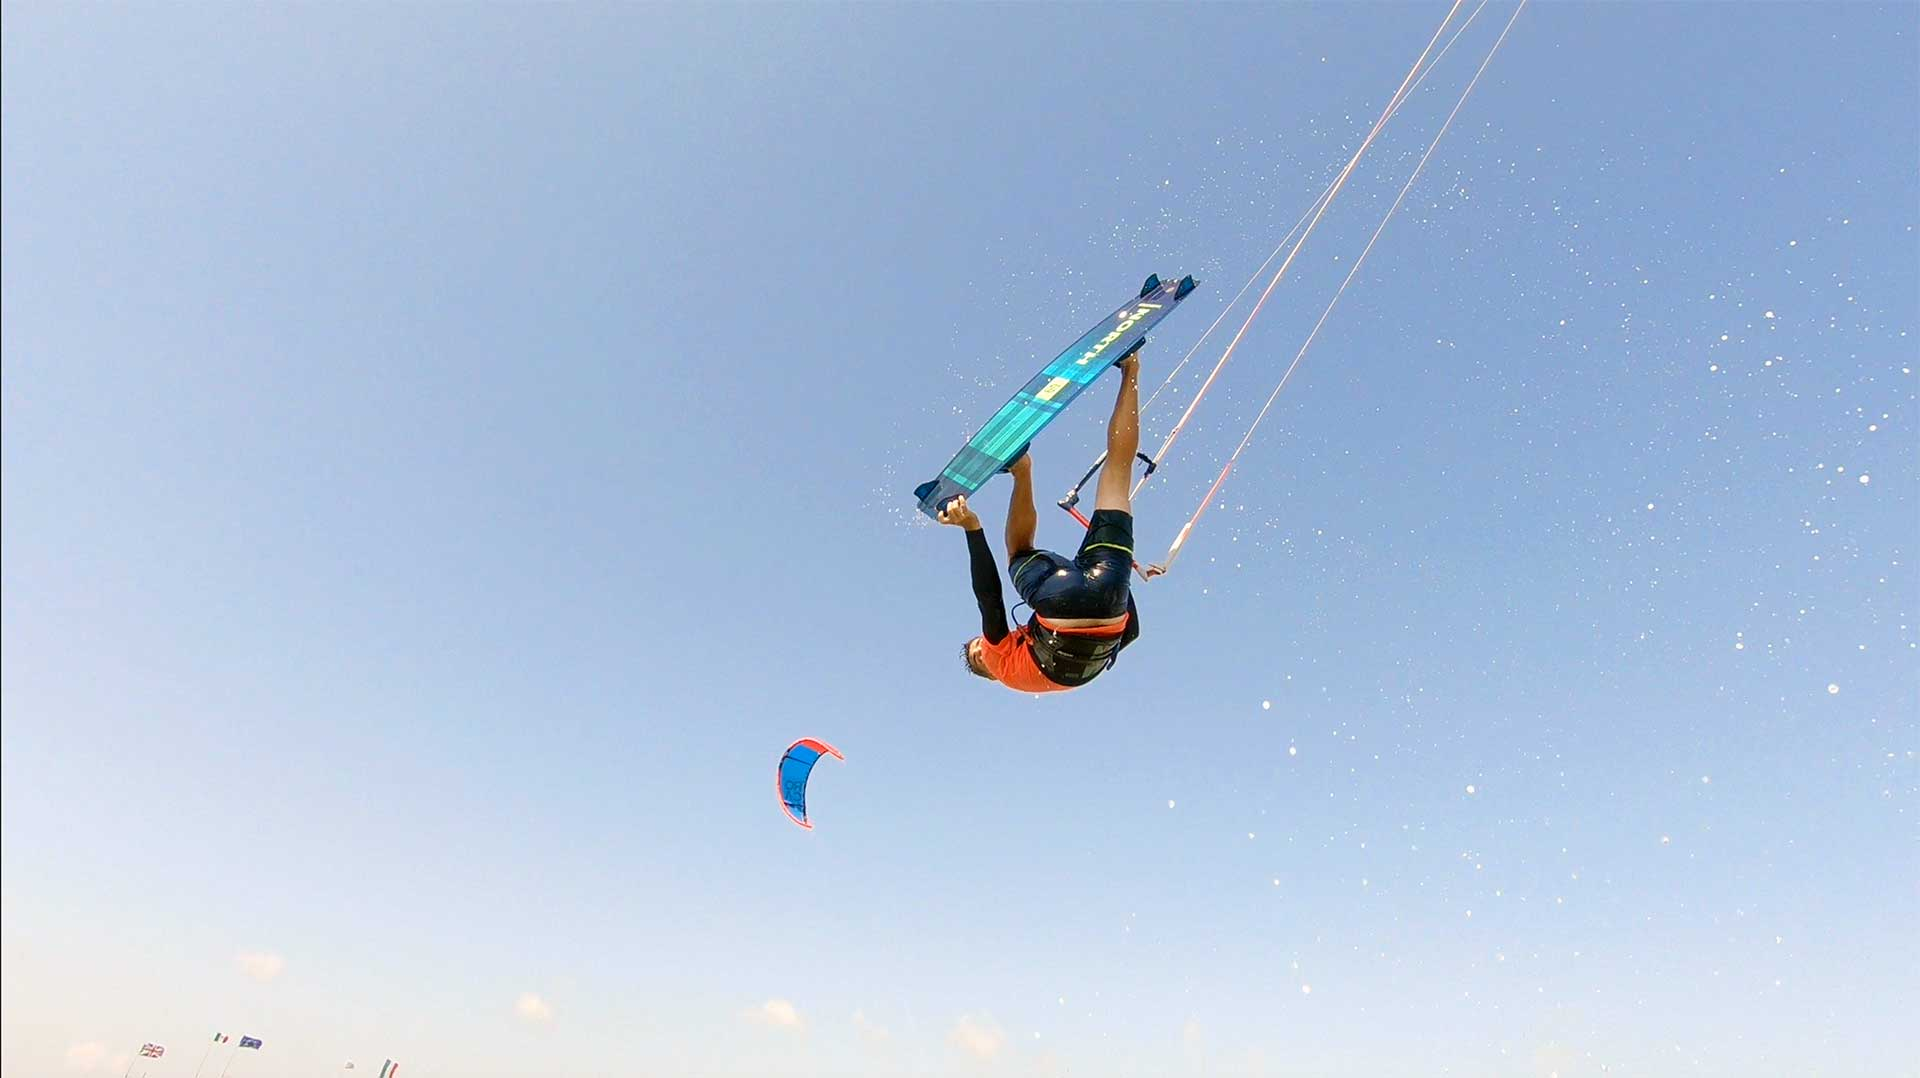 pkr kitesurf video blog big air